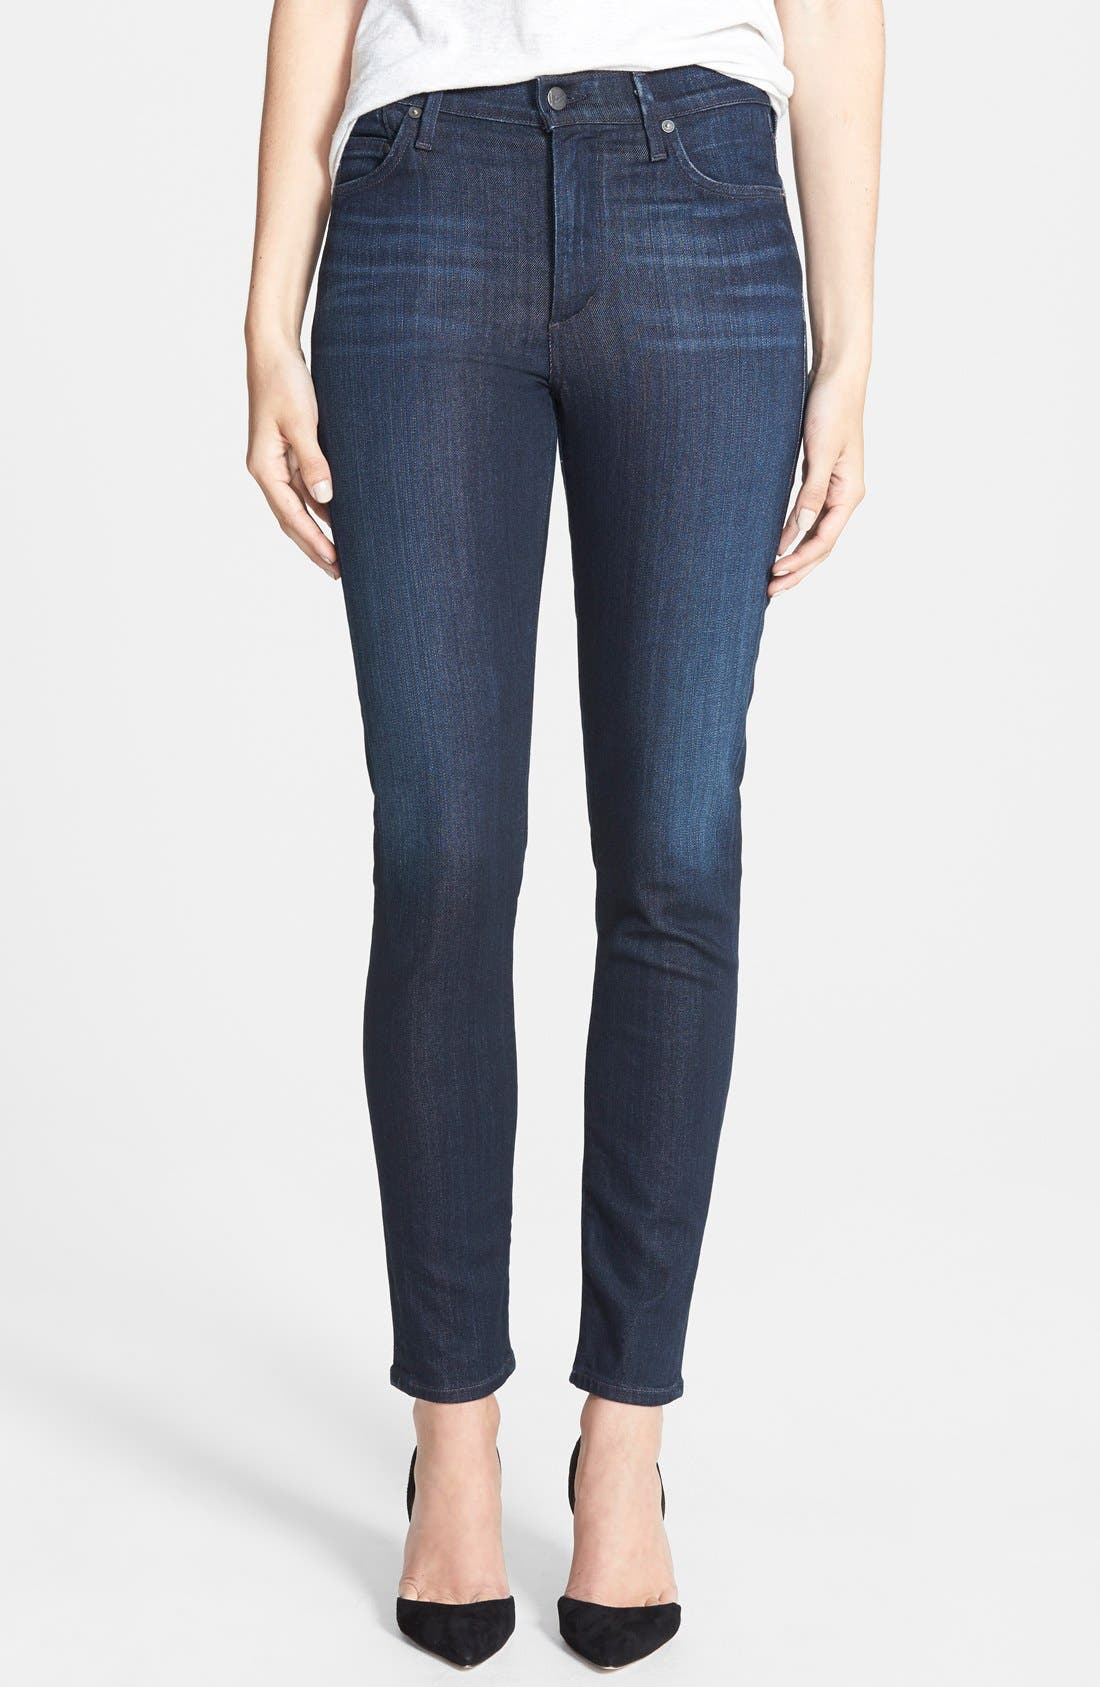 Alternate Image 1 Selected - Citizens of Humanity 'Rocket' High Rise Skinny Jeans (Space)